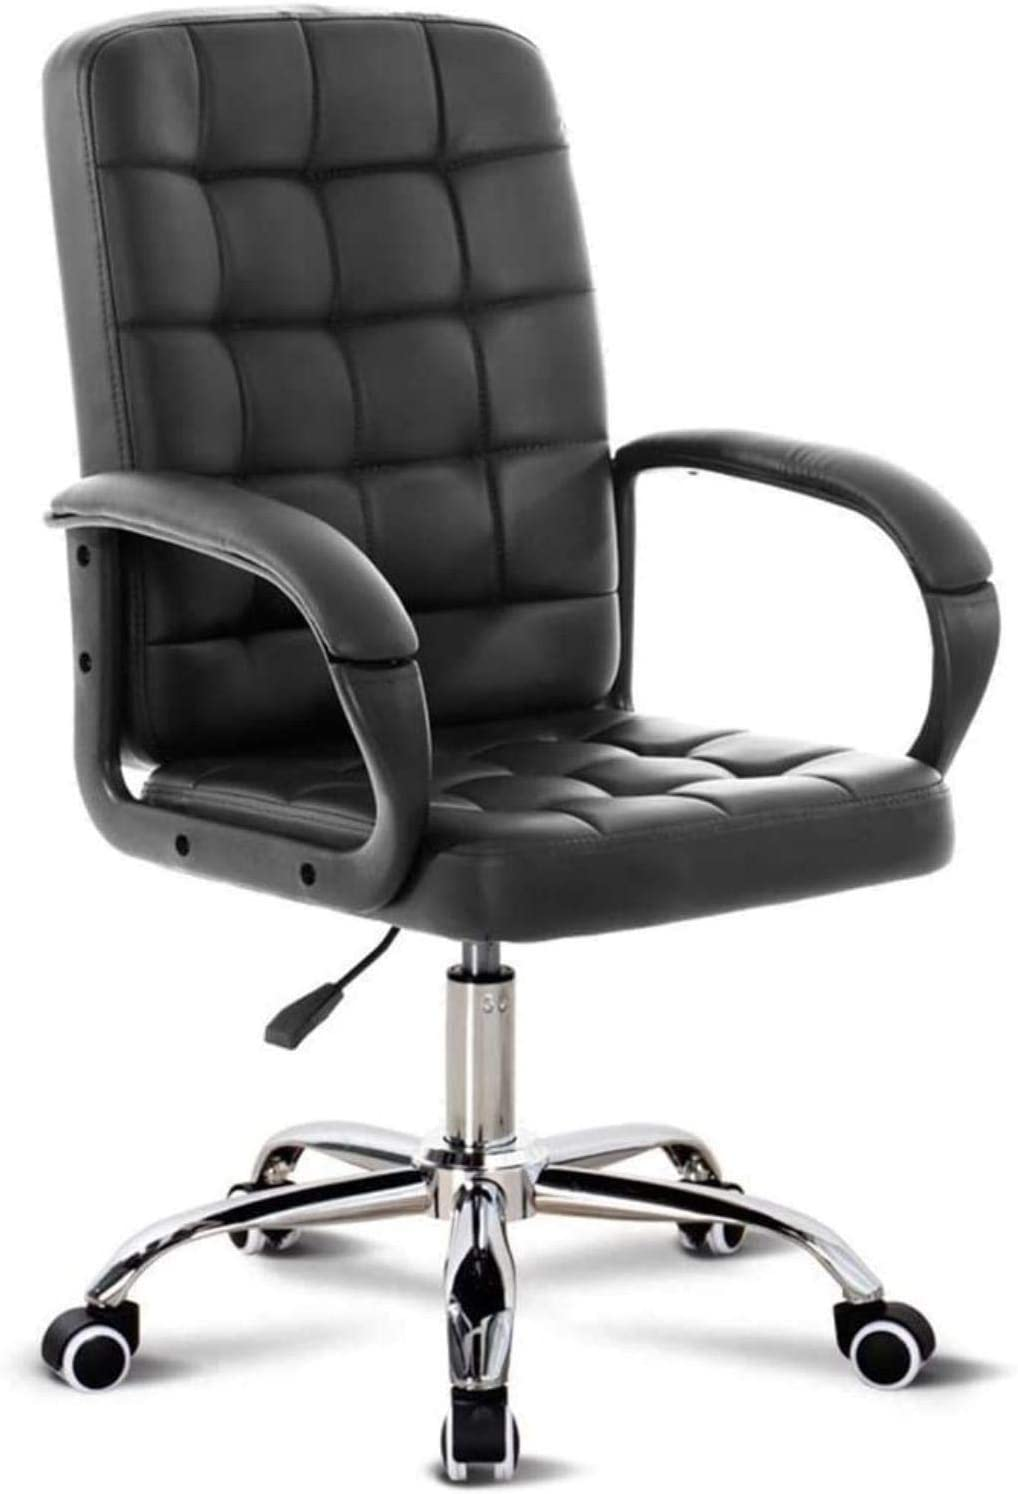 HJW Office Chair Can Reduce Back Pain Air Lift Chair Height Can Adjustment and Lock Armchair,Black